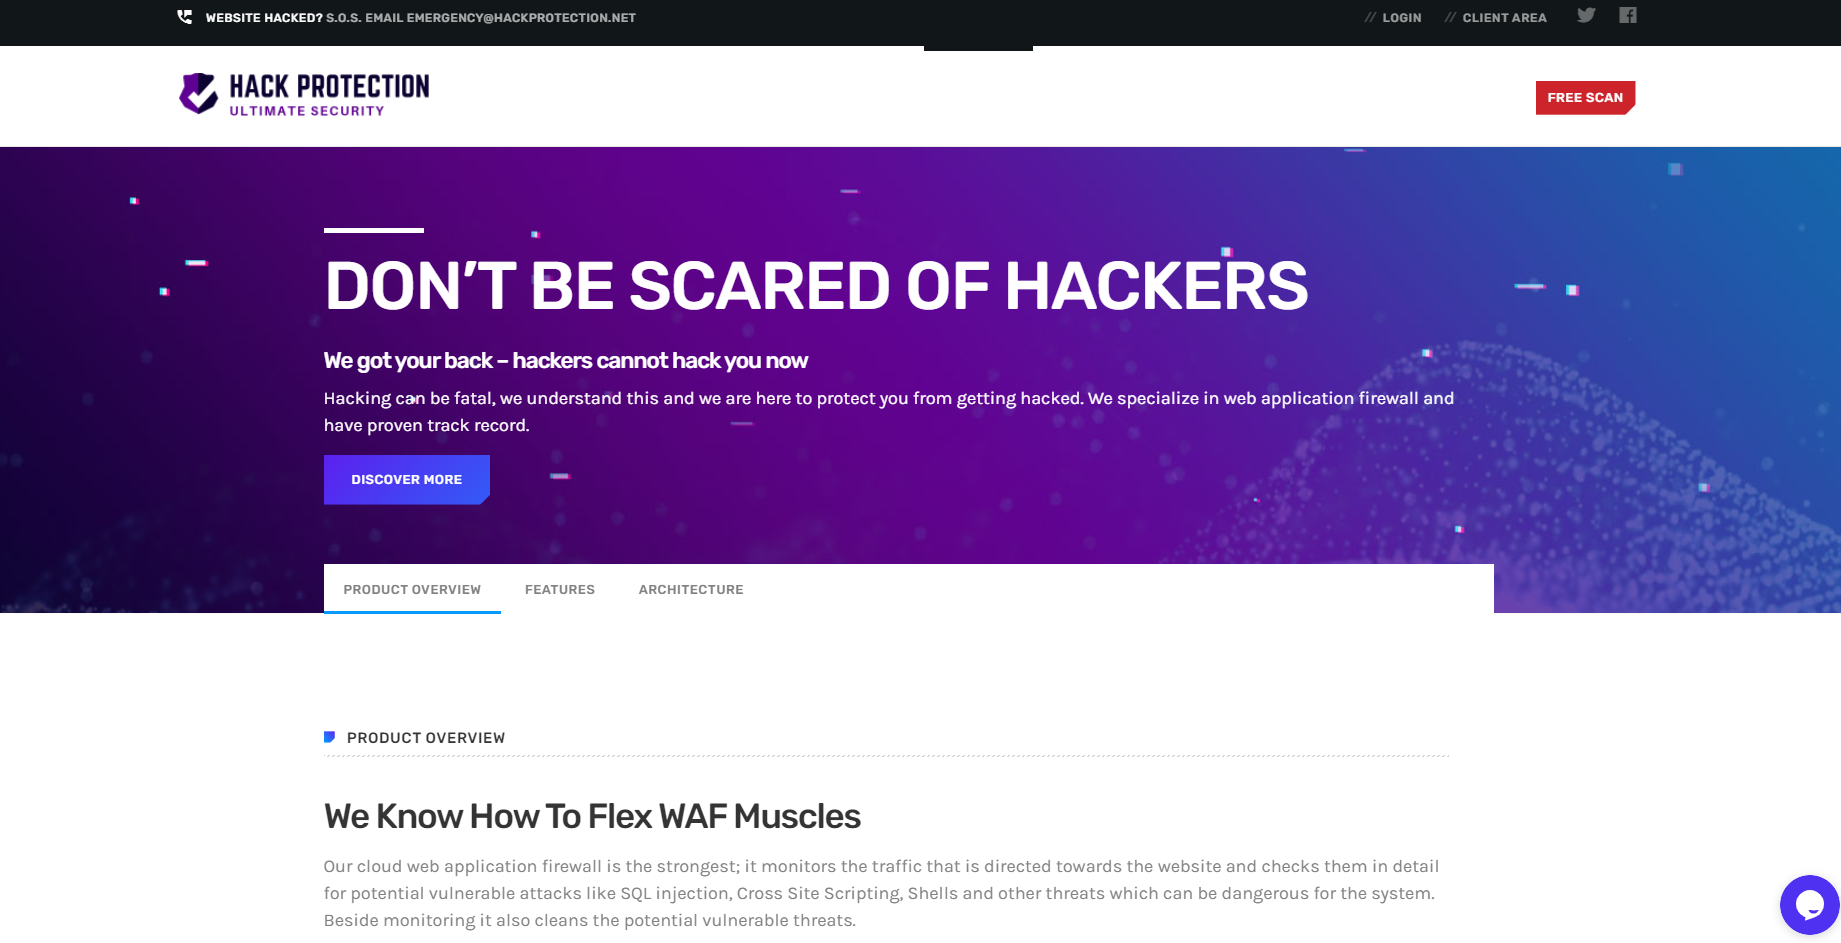 WAF Protection hack protection